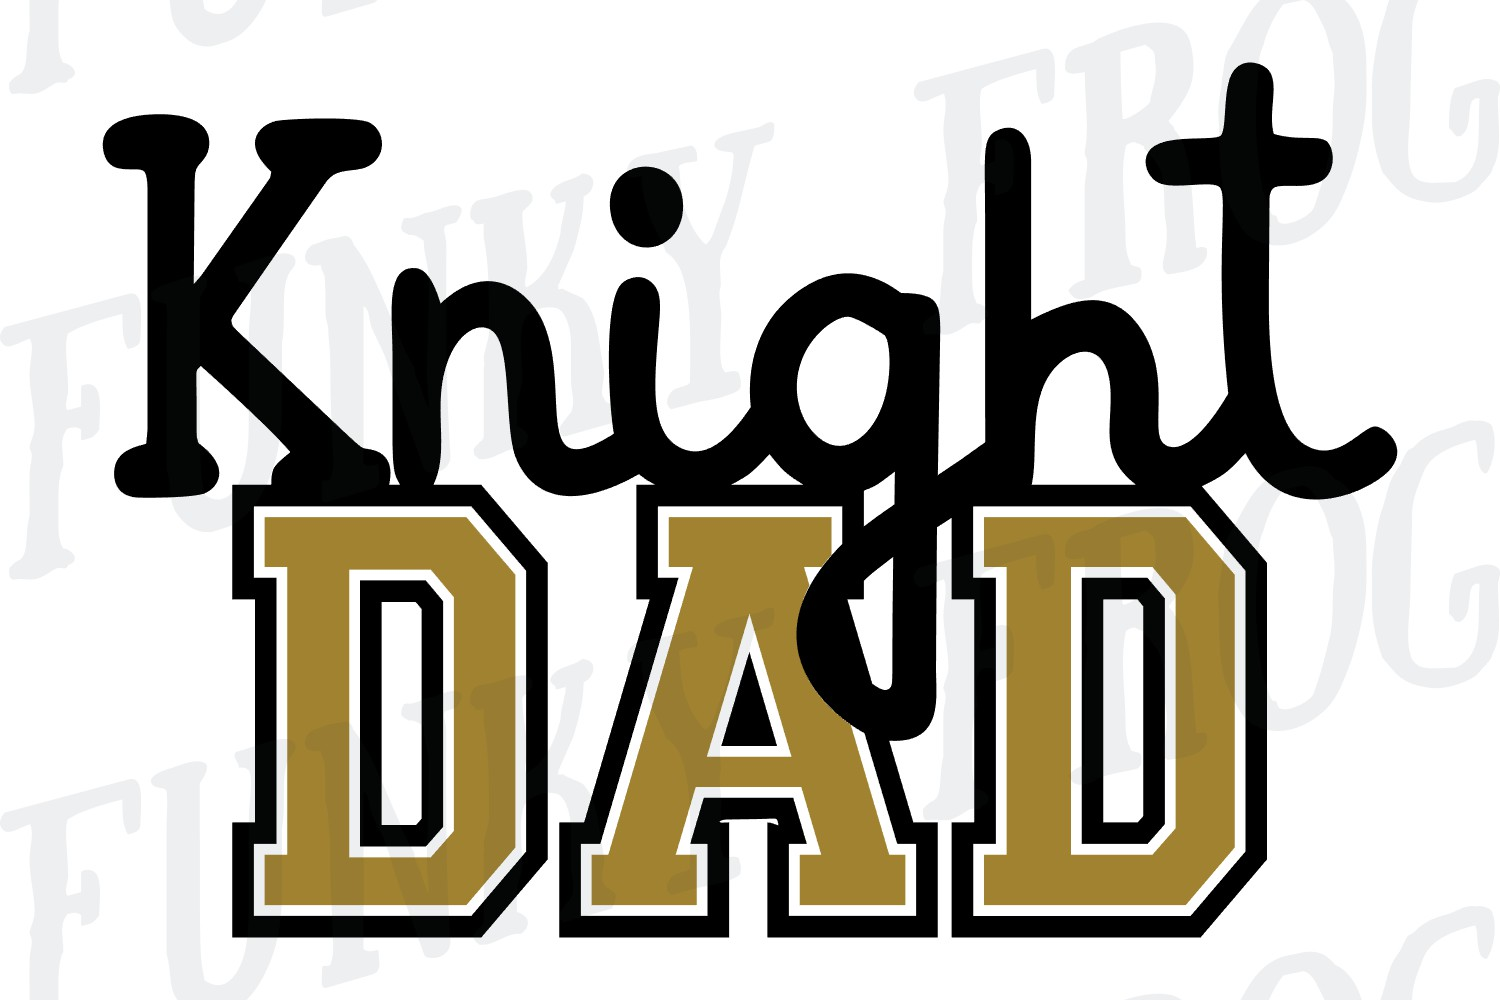 Knight Dad and Knight Mom SVG Cut File for Crafters example image 2